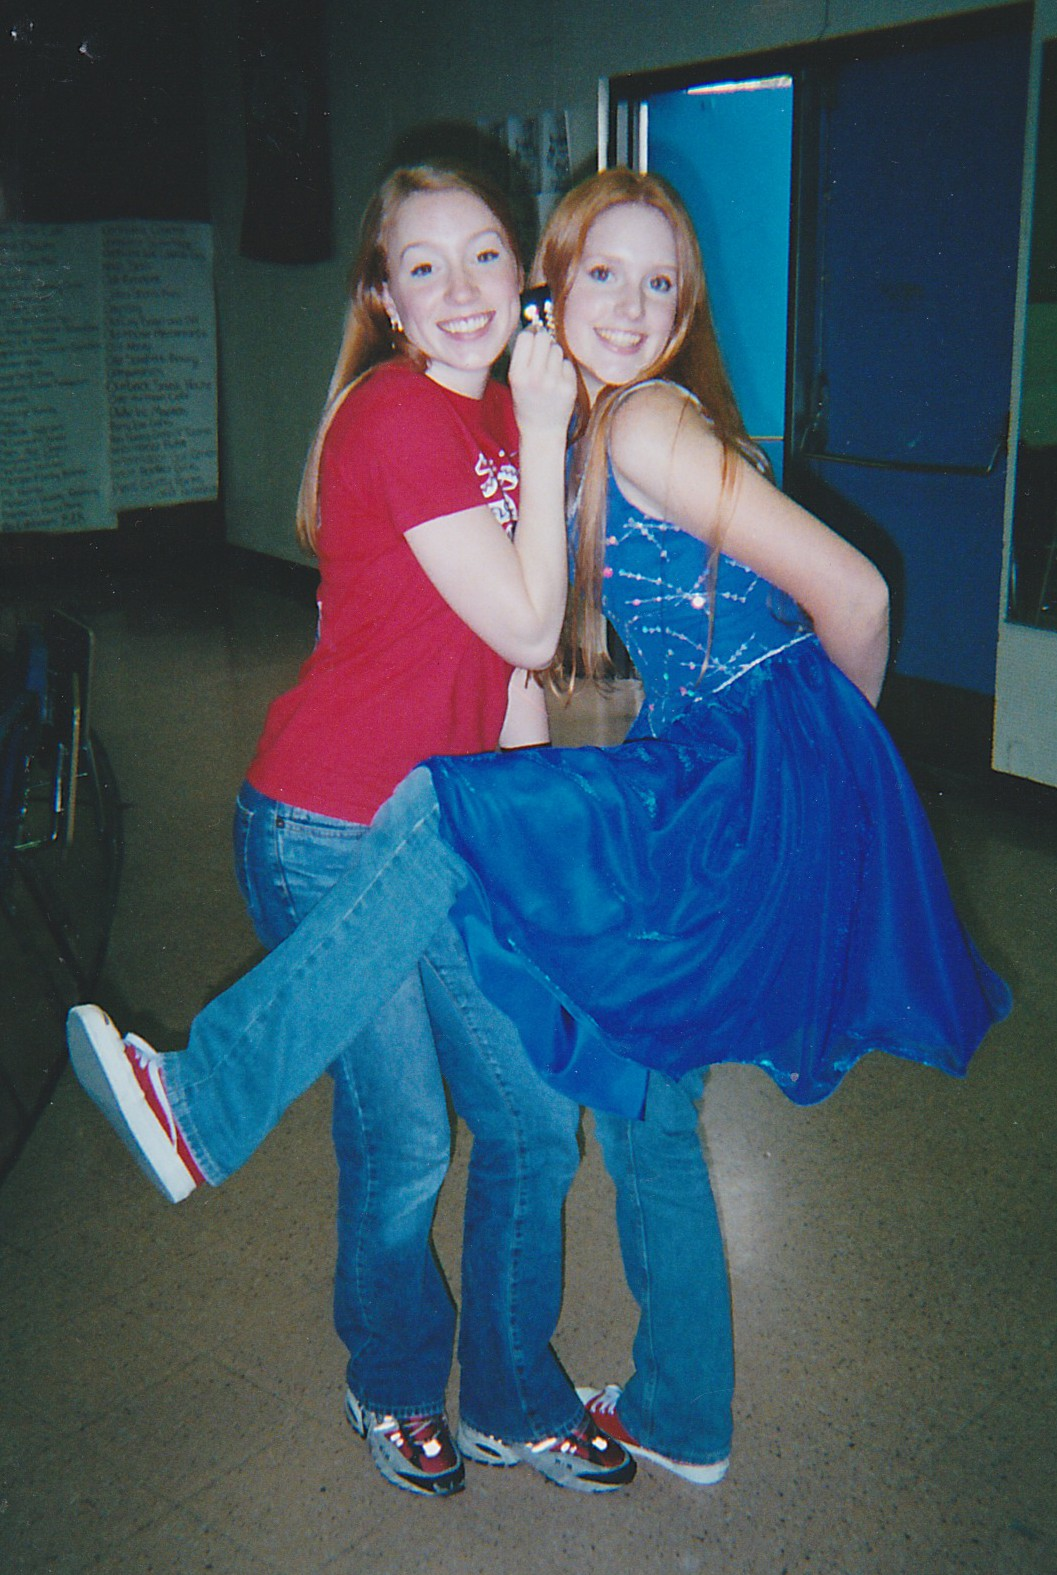 Taken at the beginning of my Senior Year of High School, this picture shows the long red hair for which I was known during my teen years.